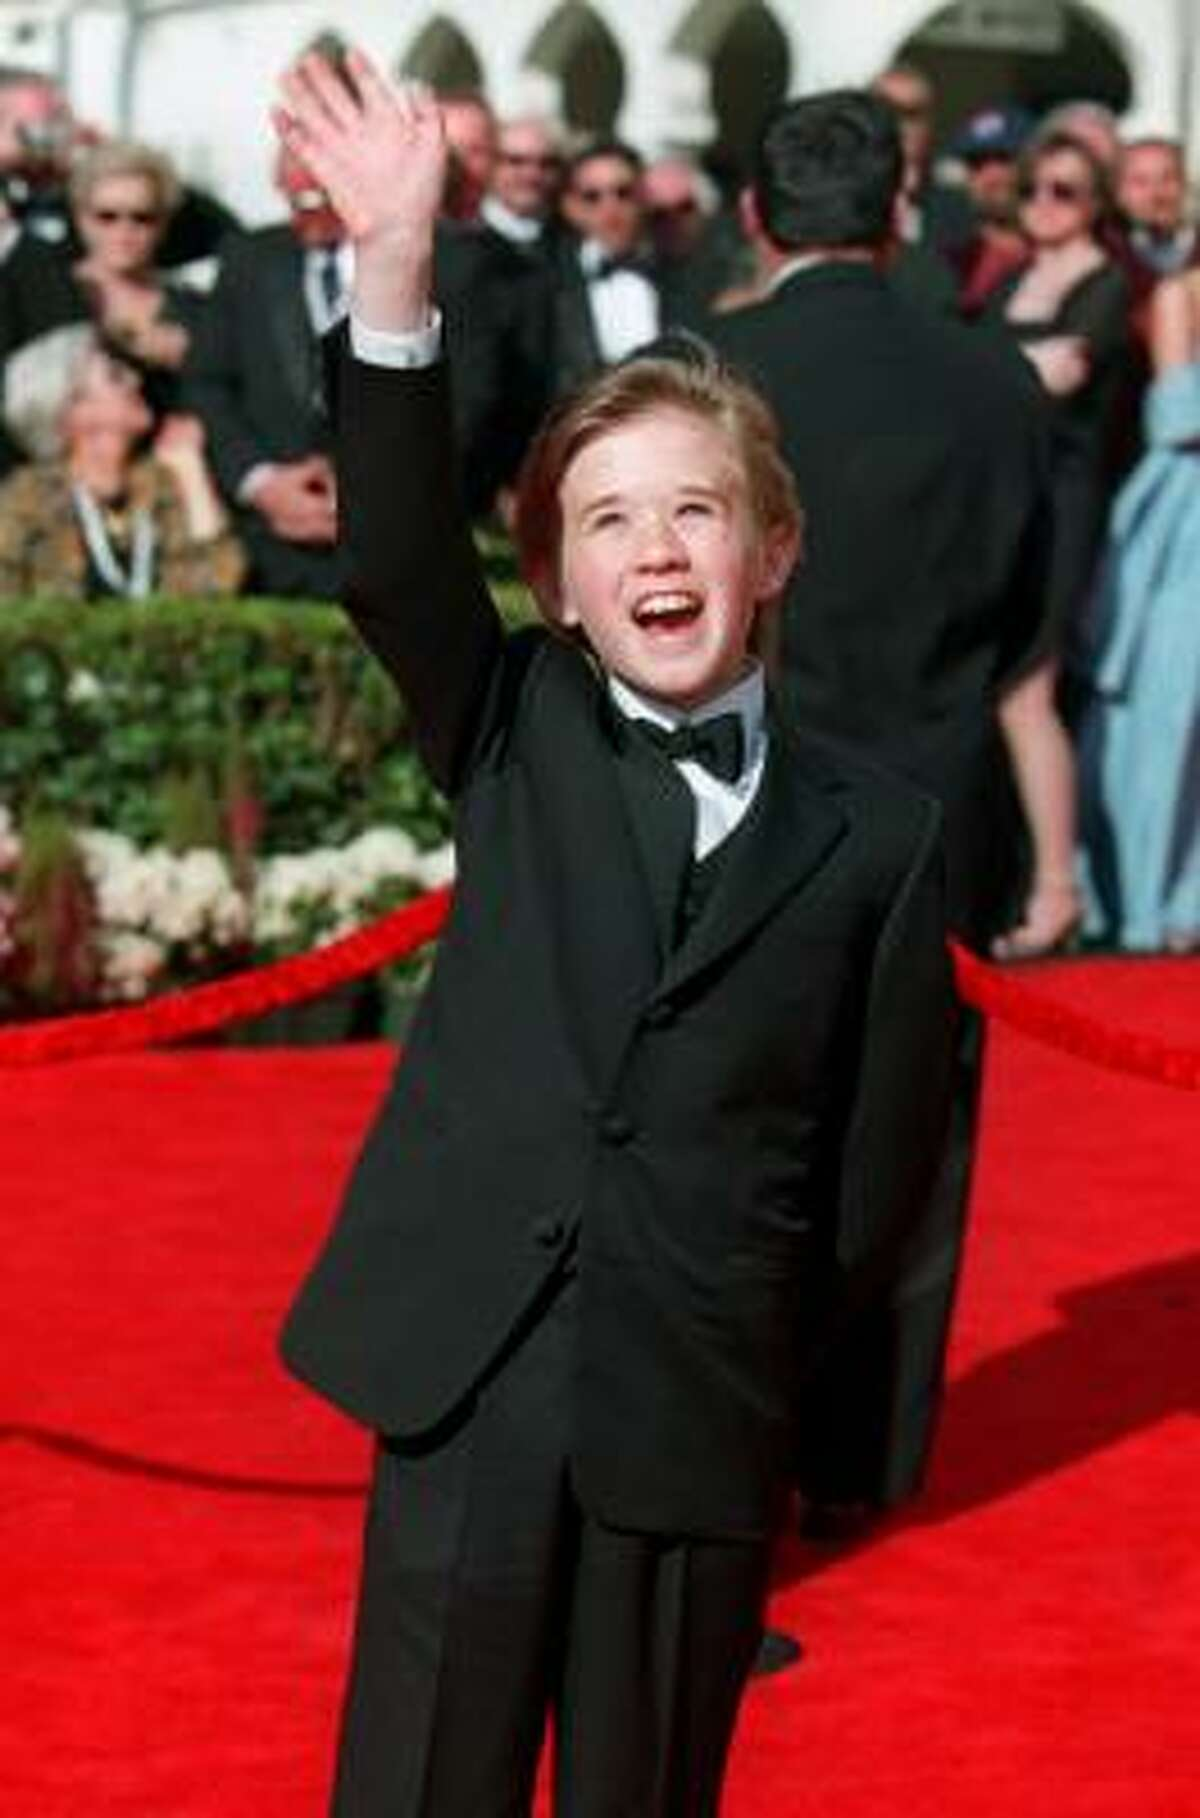 Haley Joel Osment, 11, Best Supporting Actor nominee (The Sixth Sense, 1999)